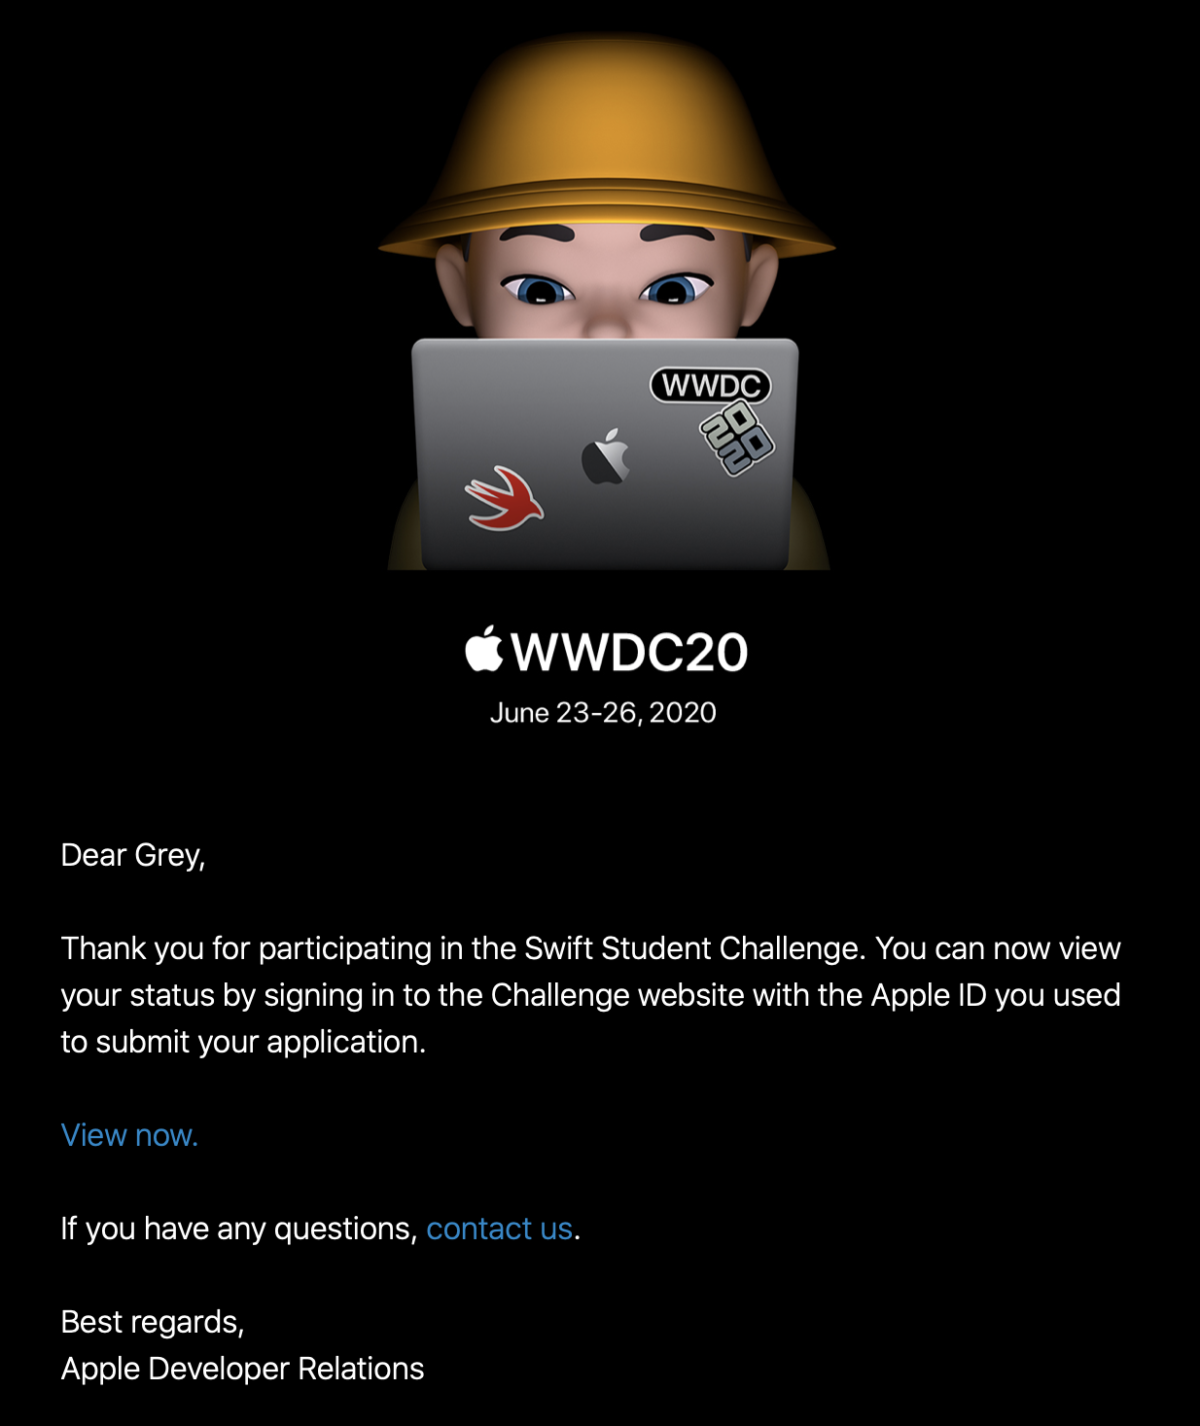 Screenshot of an email from Apple. It reads: WWDC20, June 23-26, 2020. Dear Grey, Thank you for participating in the Swift Student Challenge. You can now view your status by signing in to the Challenge website with the Apple ID you used to submit your application. View now. If you have any questions, contact us. Best regards, Apple Developer Relations